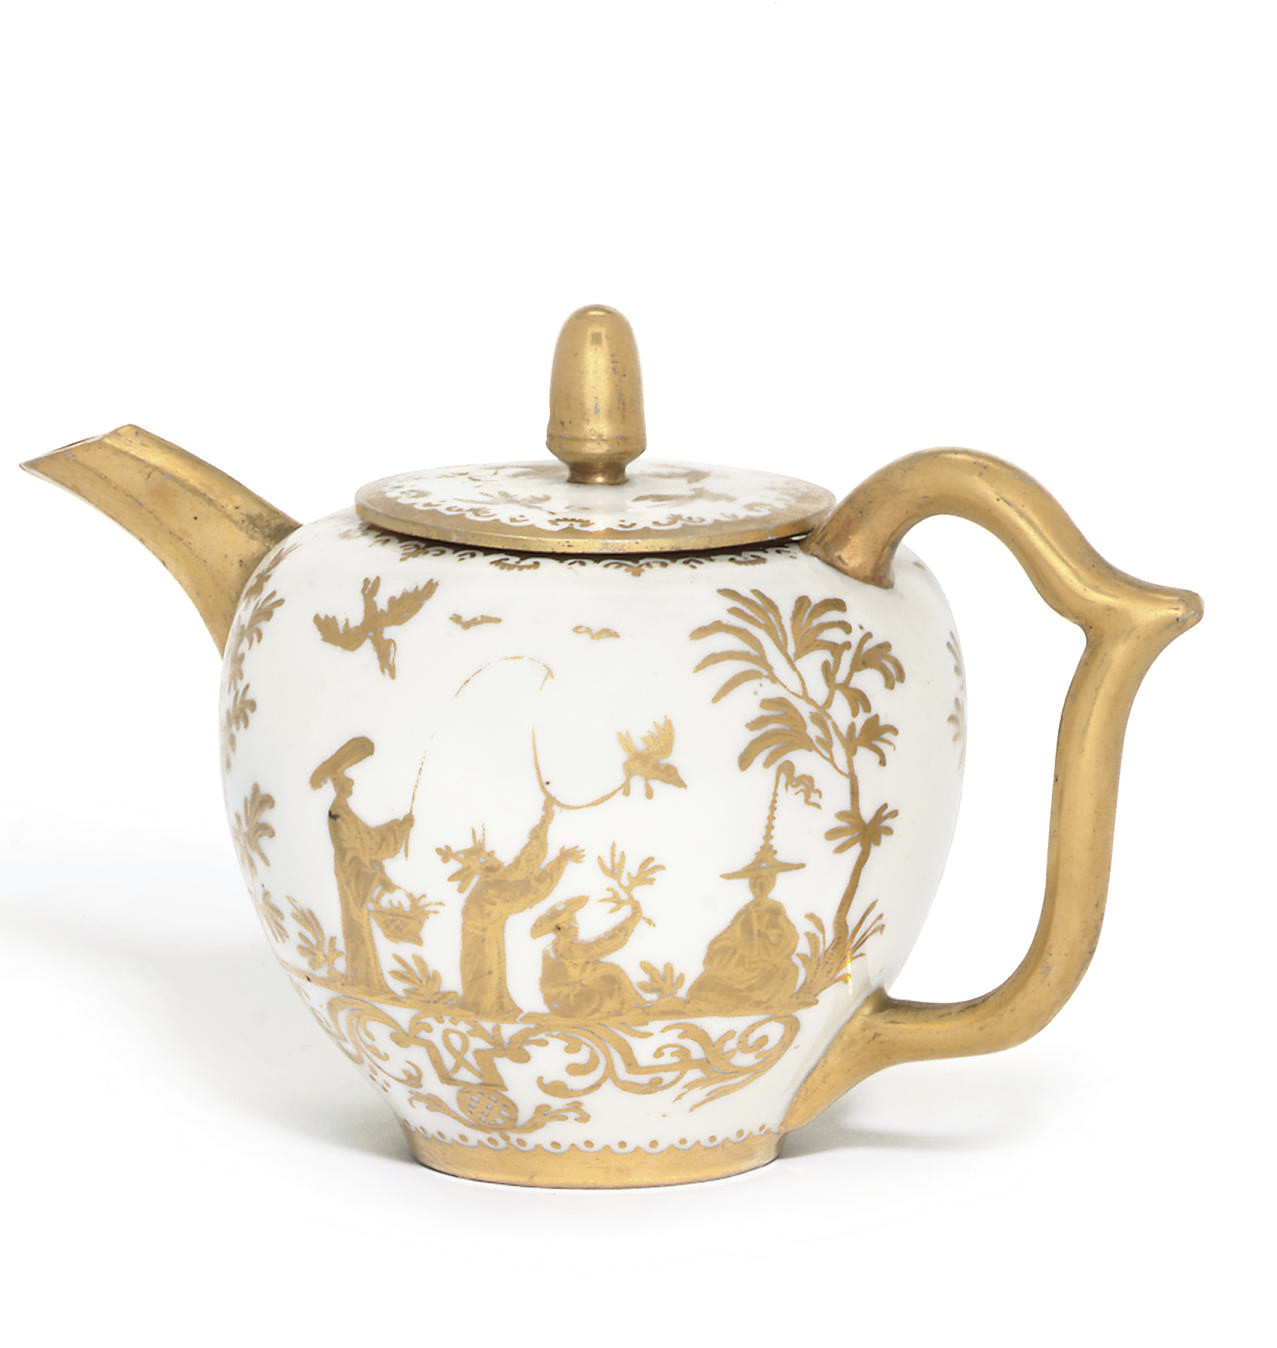 A MEISSEN SMALL GOLDCHINESEN B